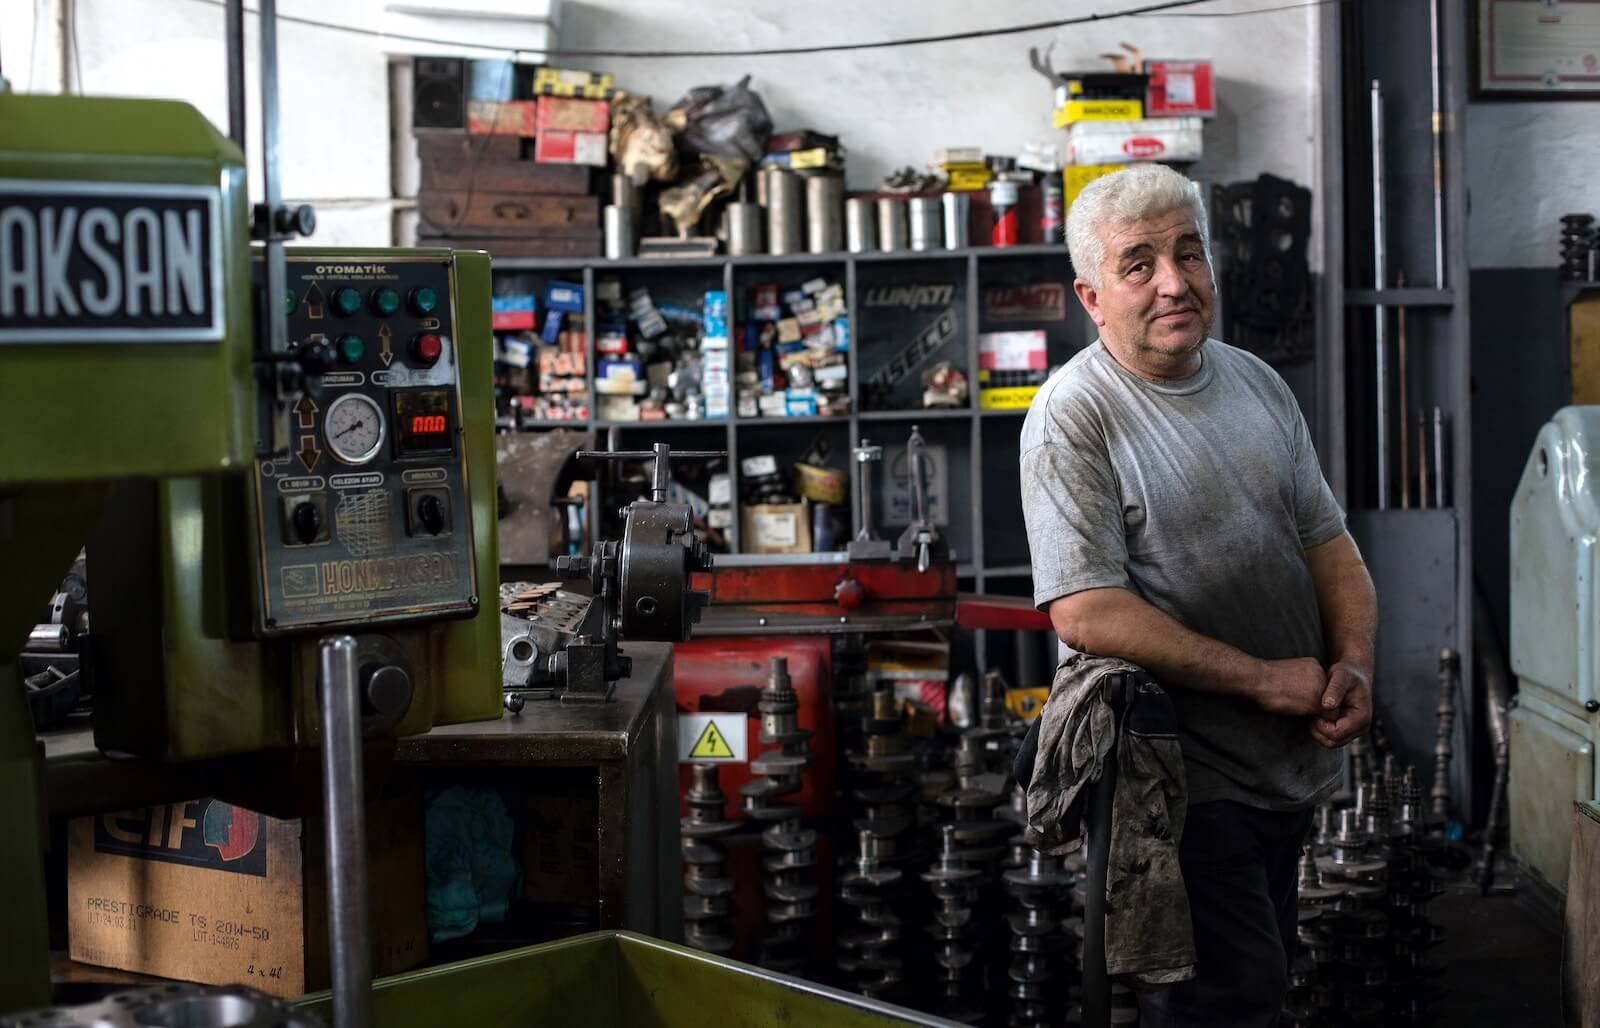 Do I need workers' compensation for my small business?